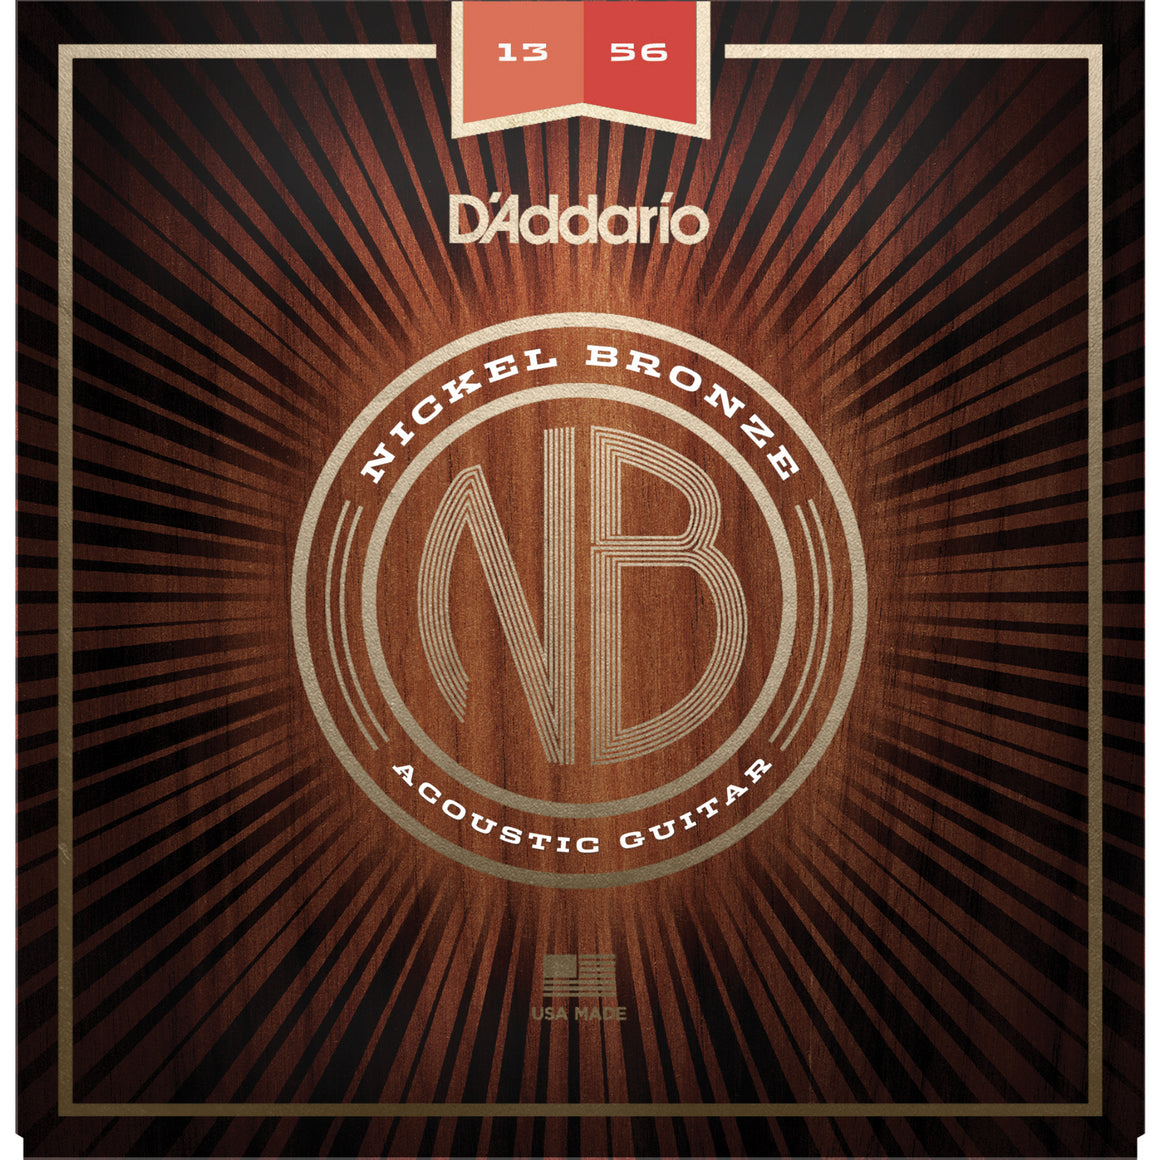 D'Addario NB1356 13-56 Nickel Bronze Medium Acoustic Guitar Strings